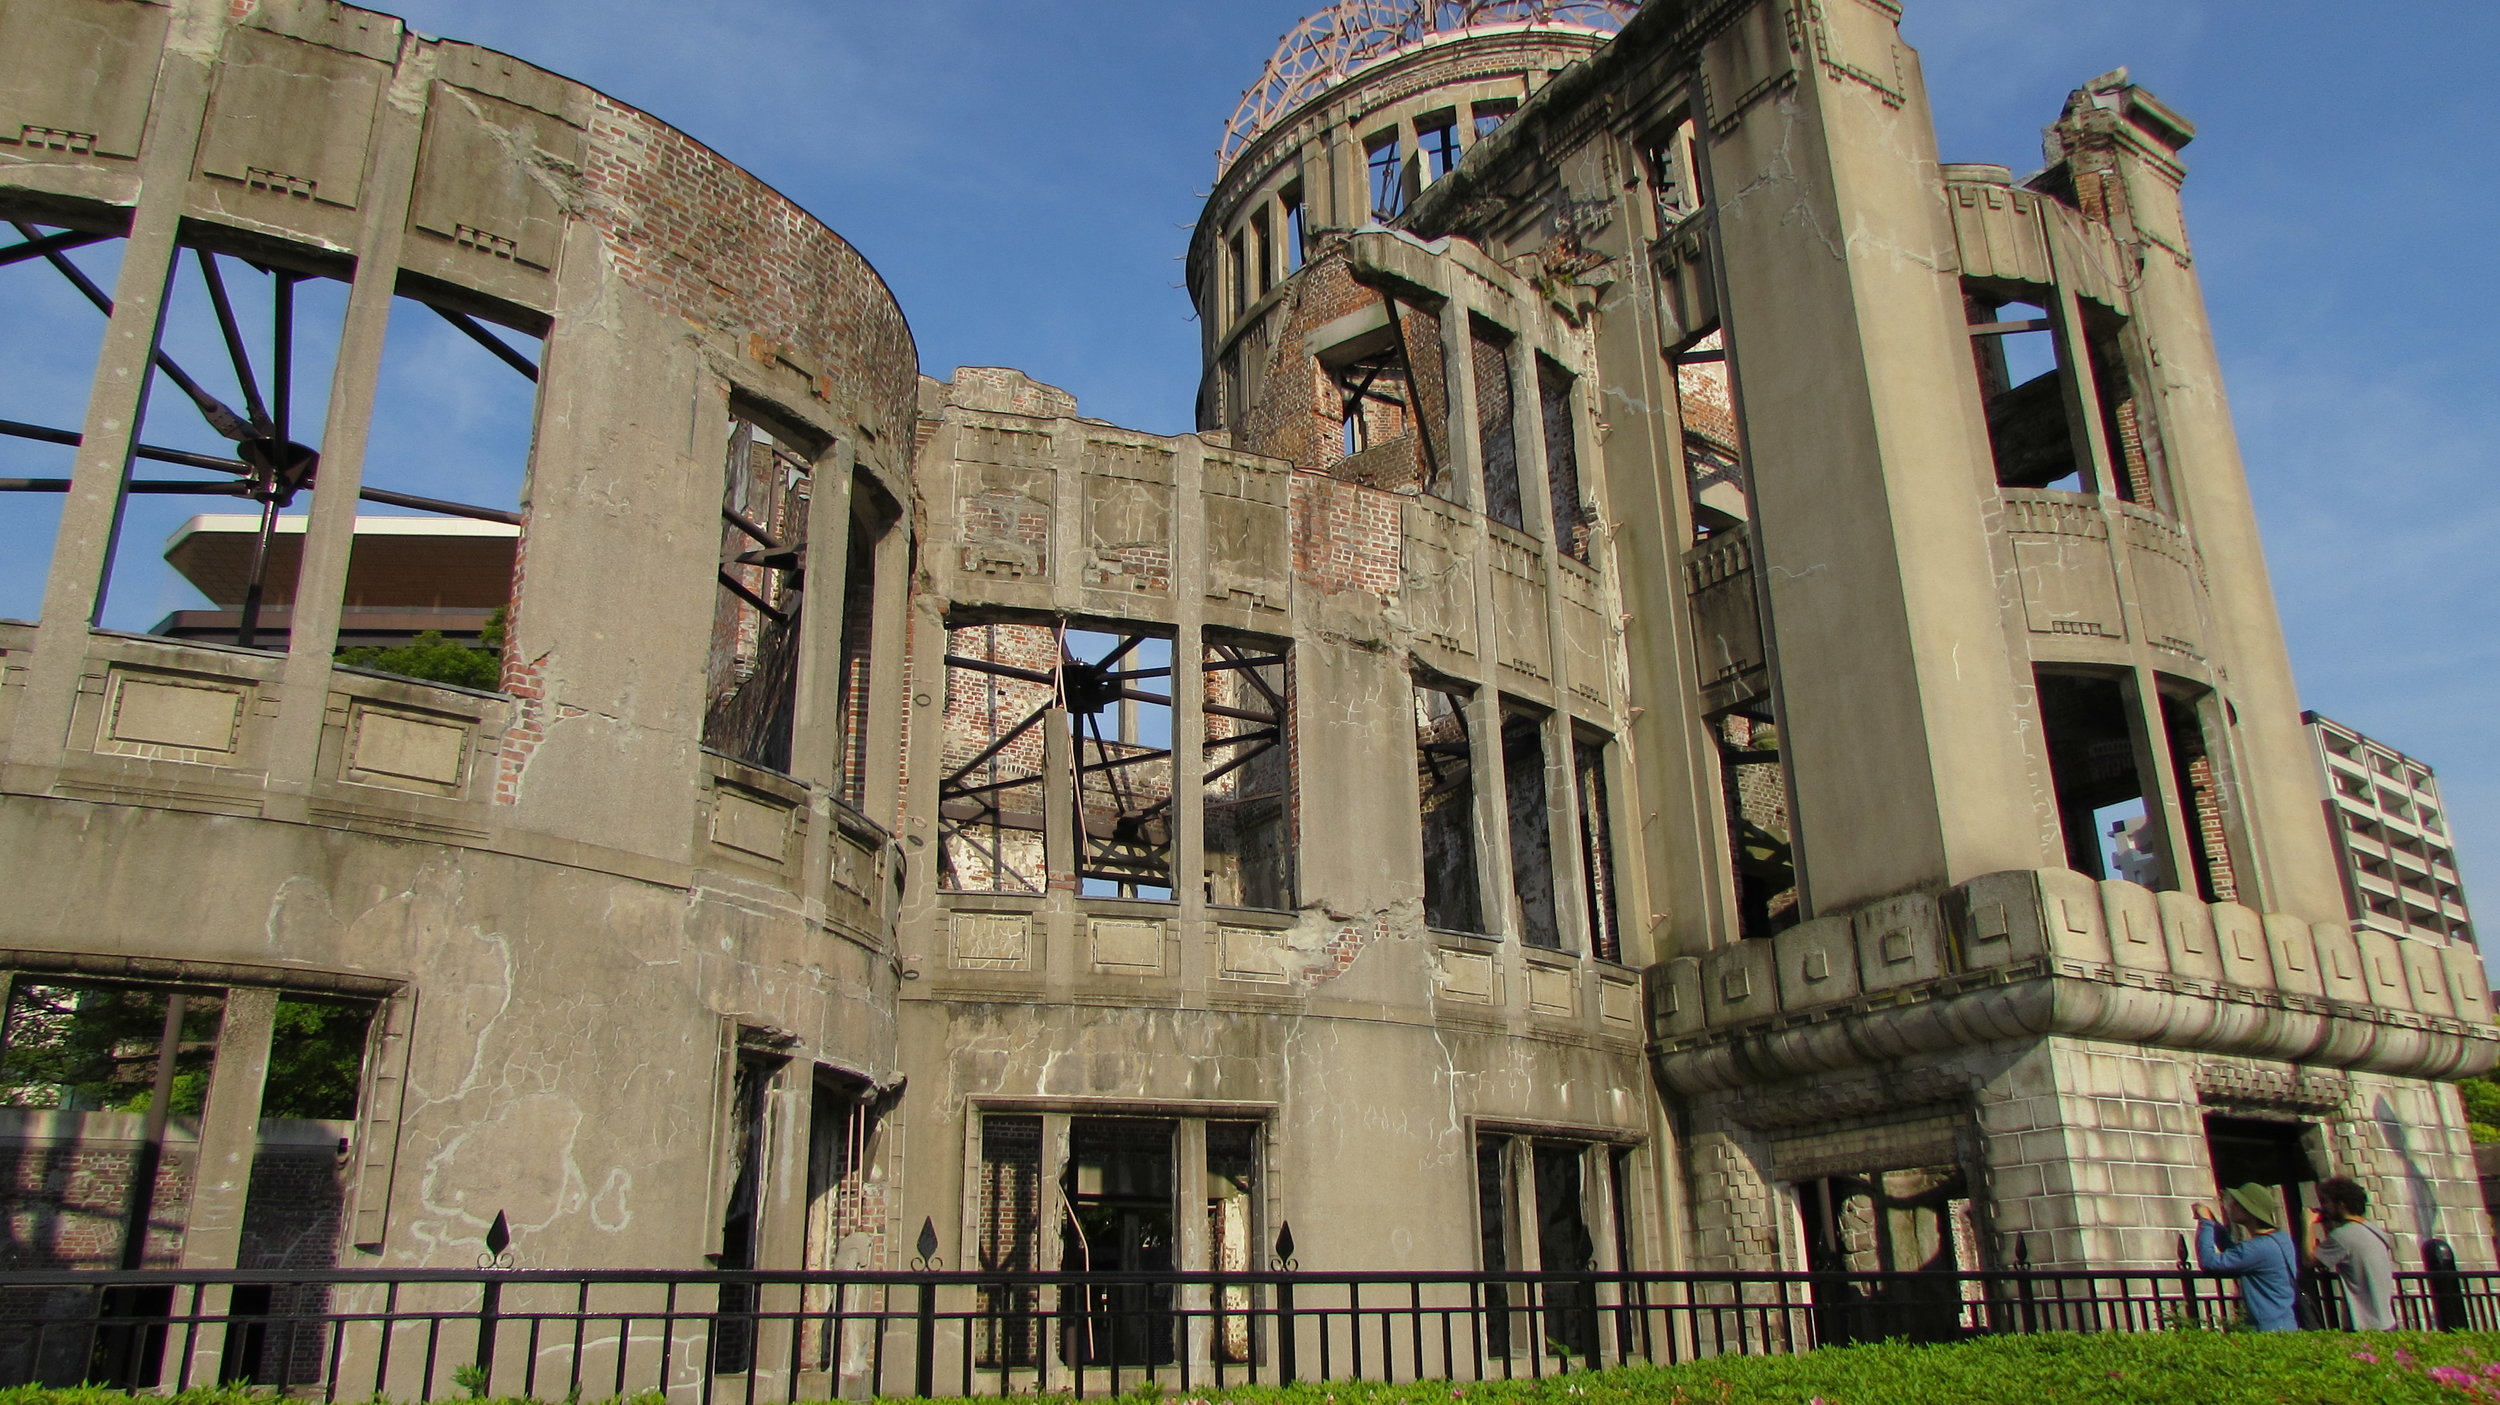 The atomic dome was closest to Ground Zero